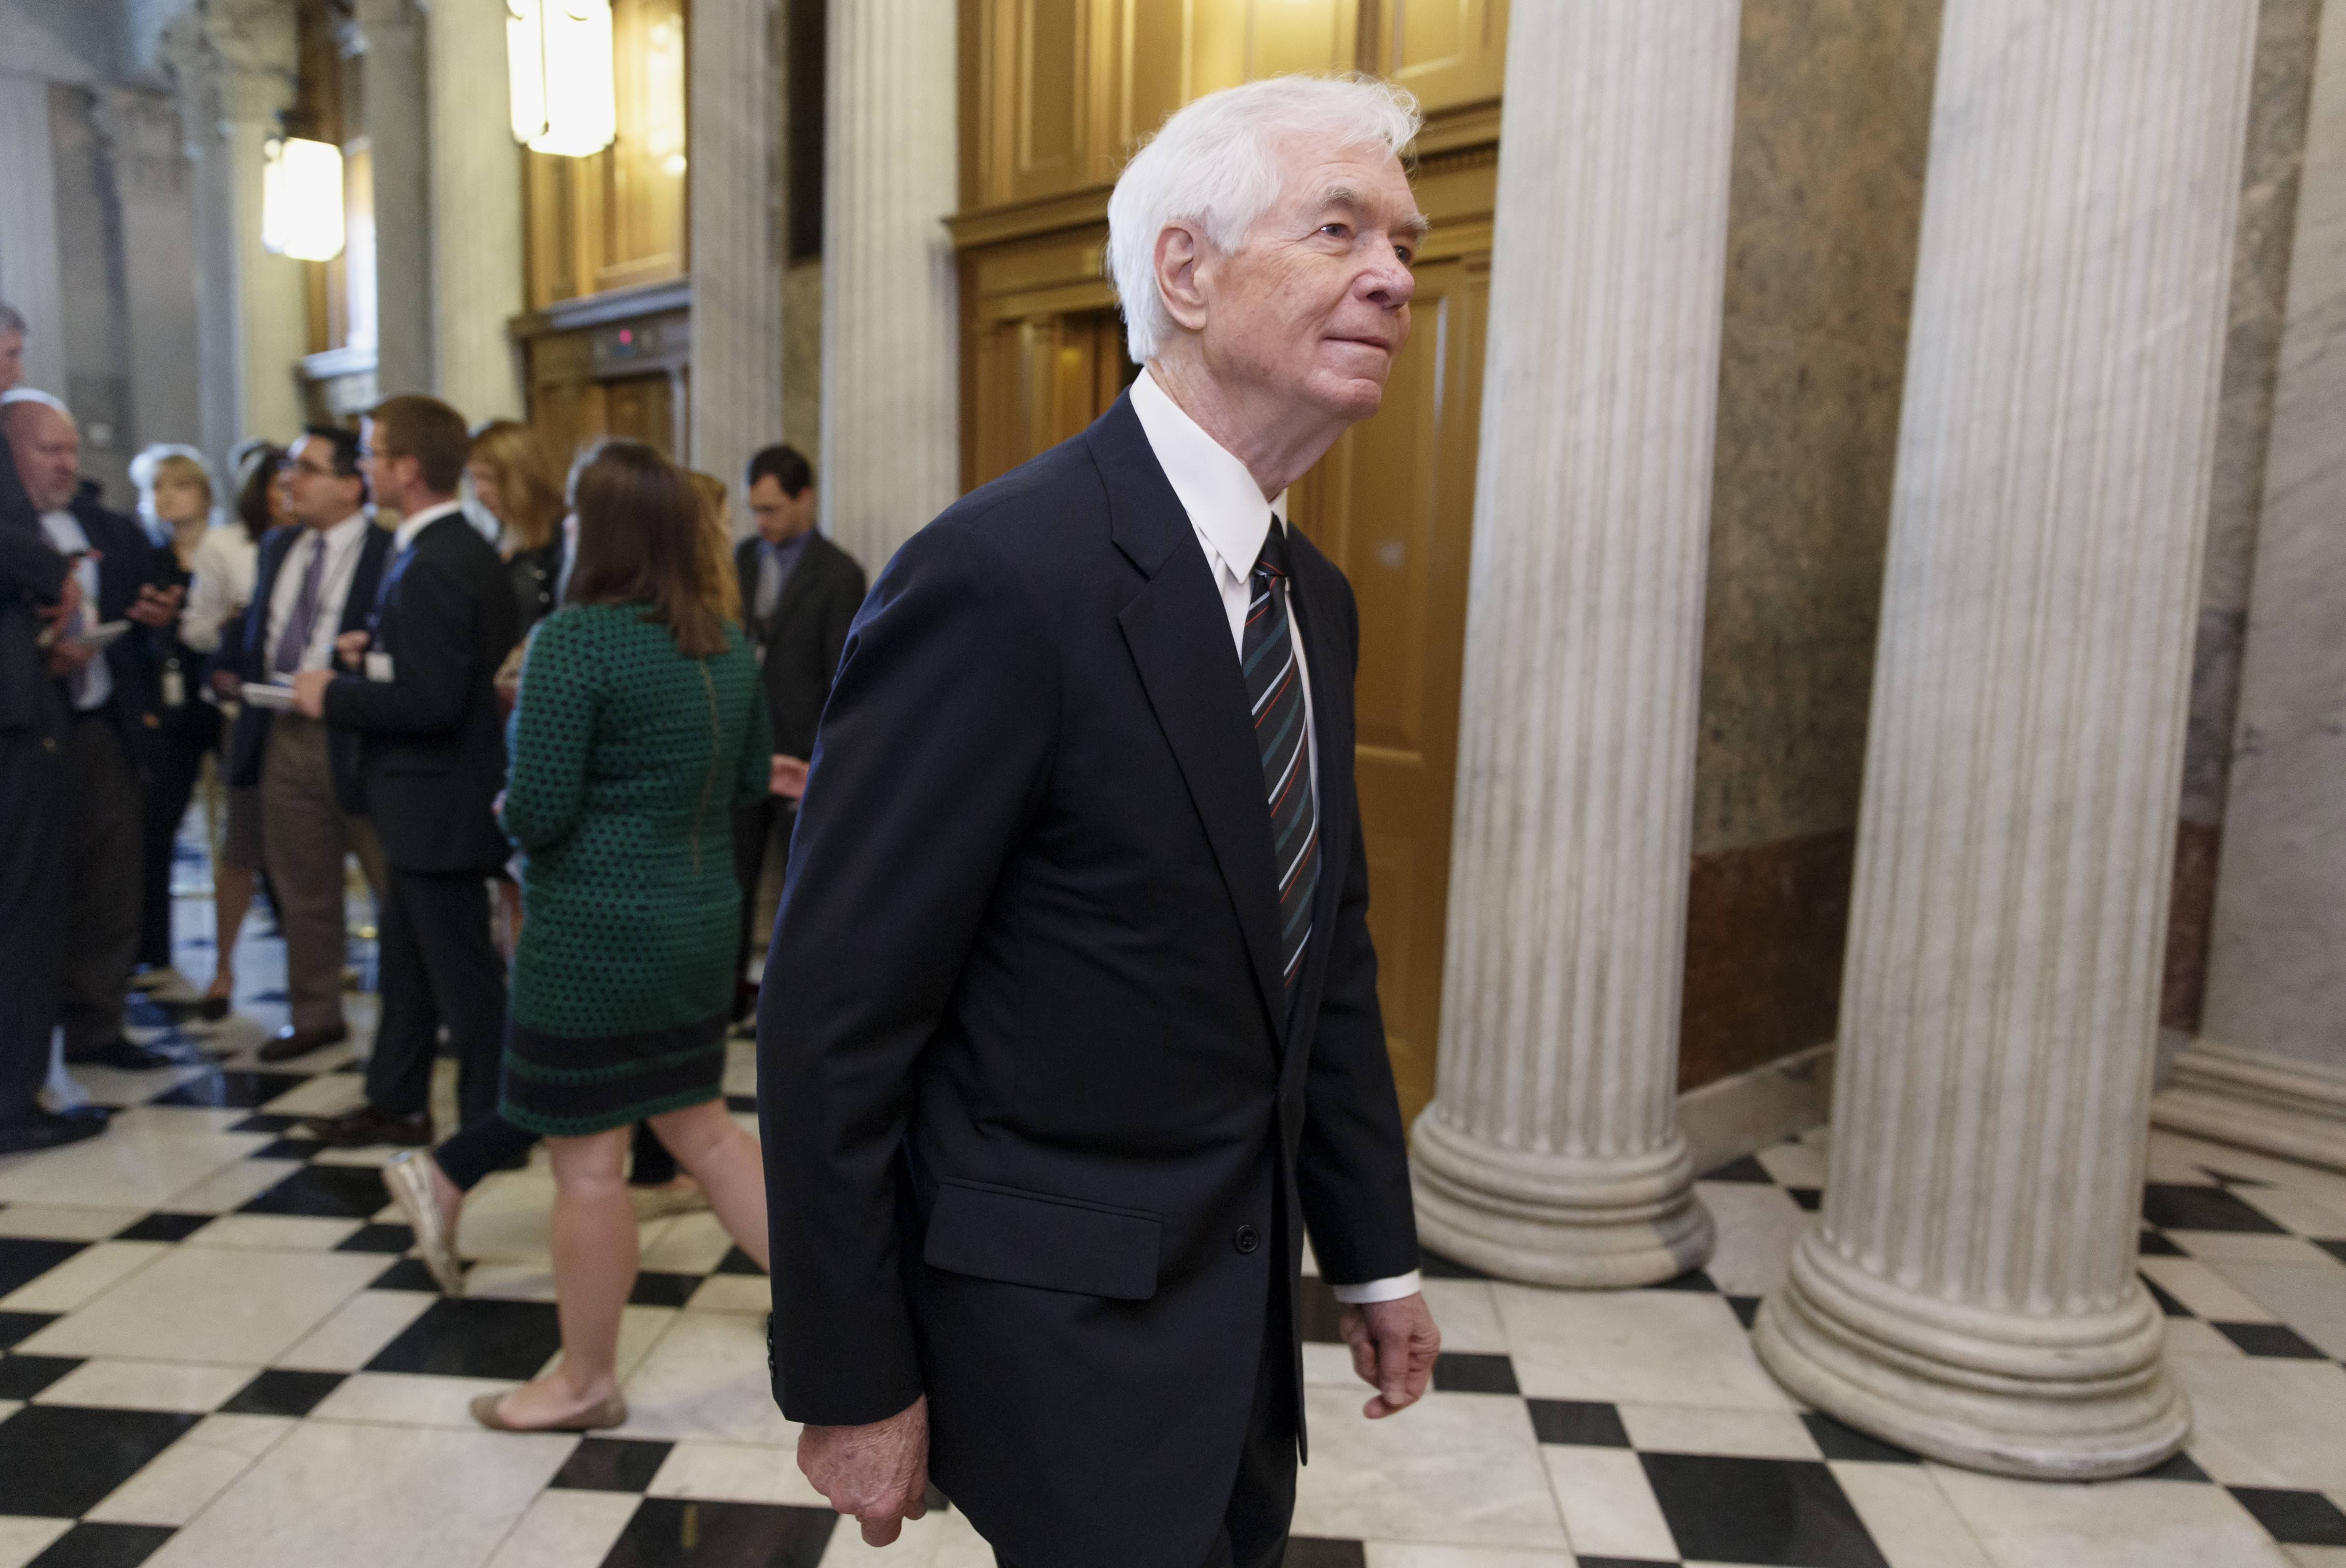 Sen. Thad Cochran, a Mississippi Republican, arrives at the Senate chamber Wednesday for a vote,